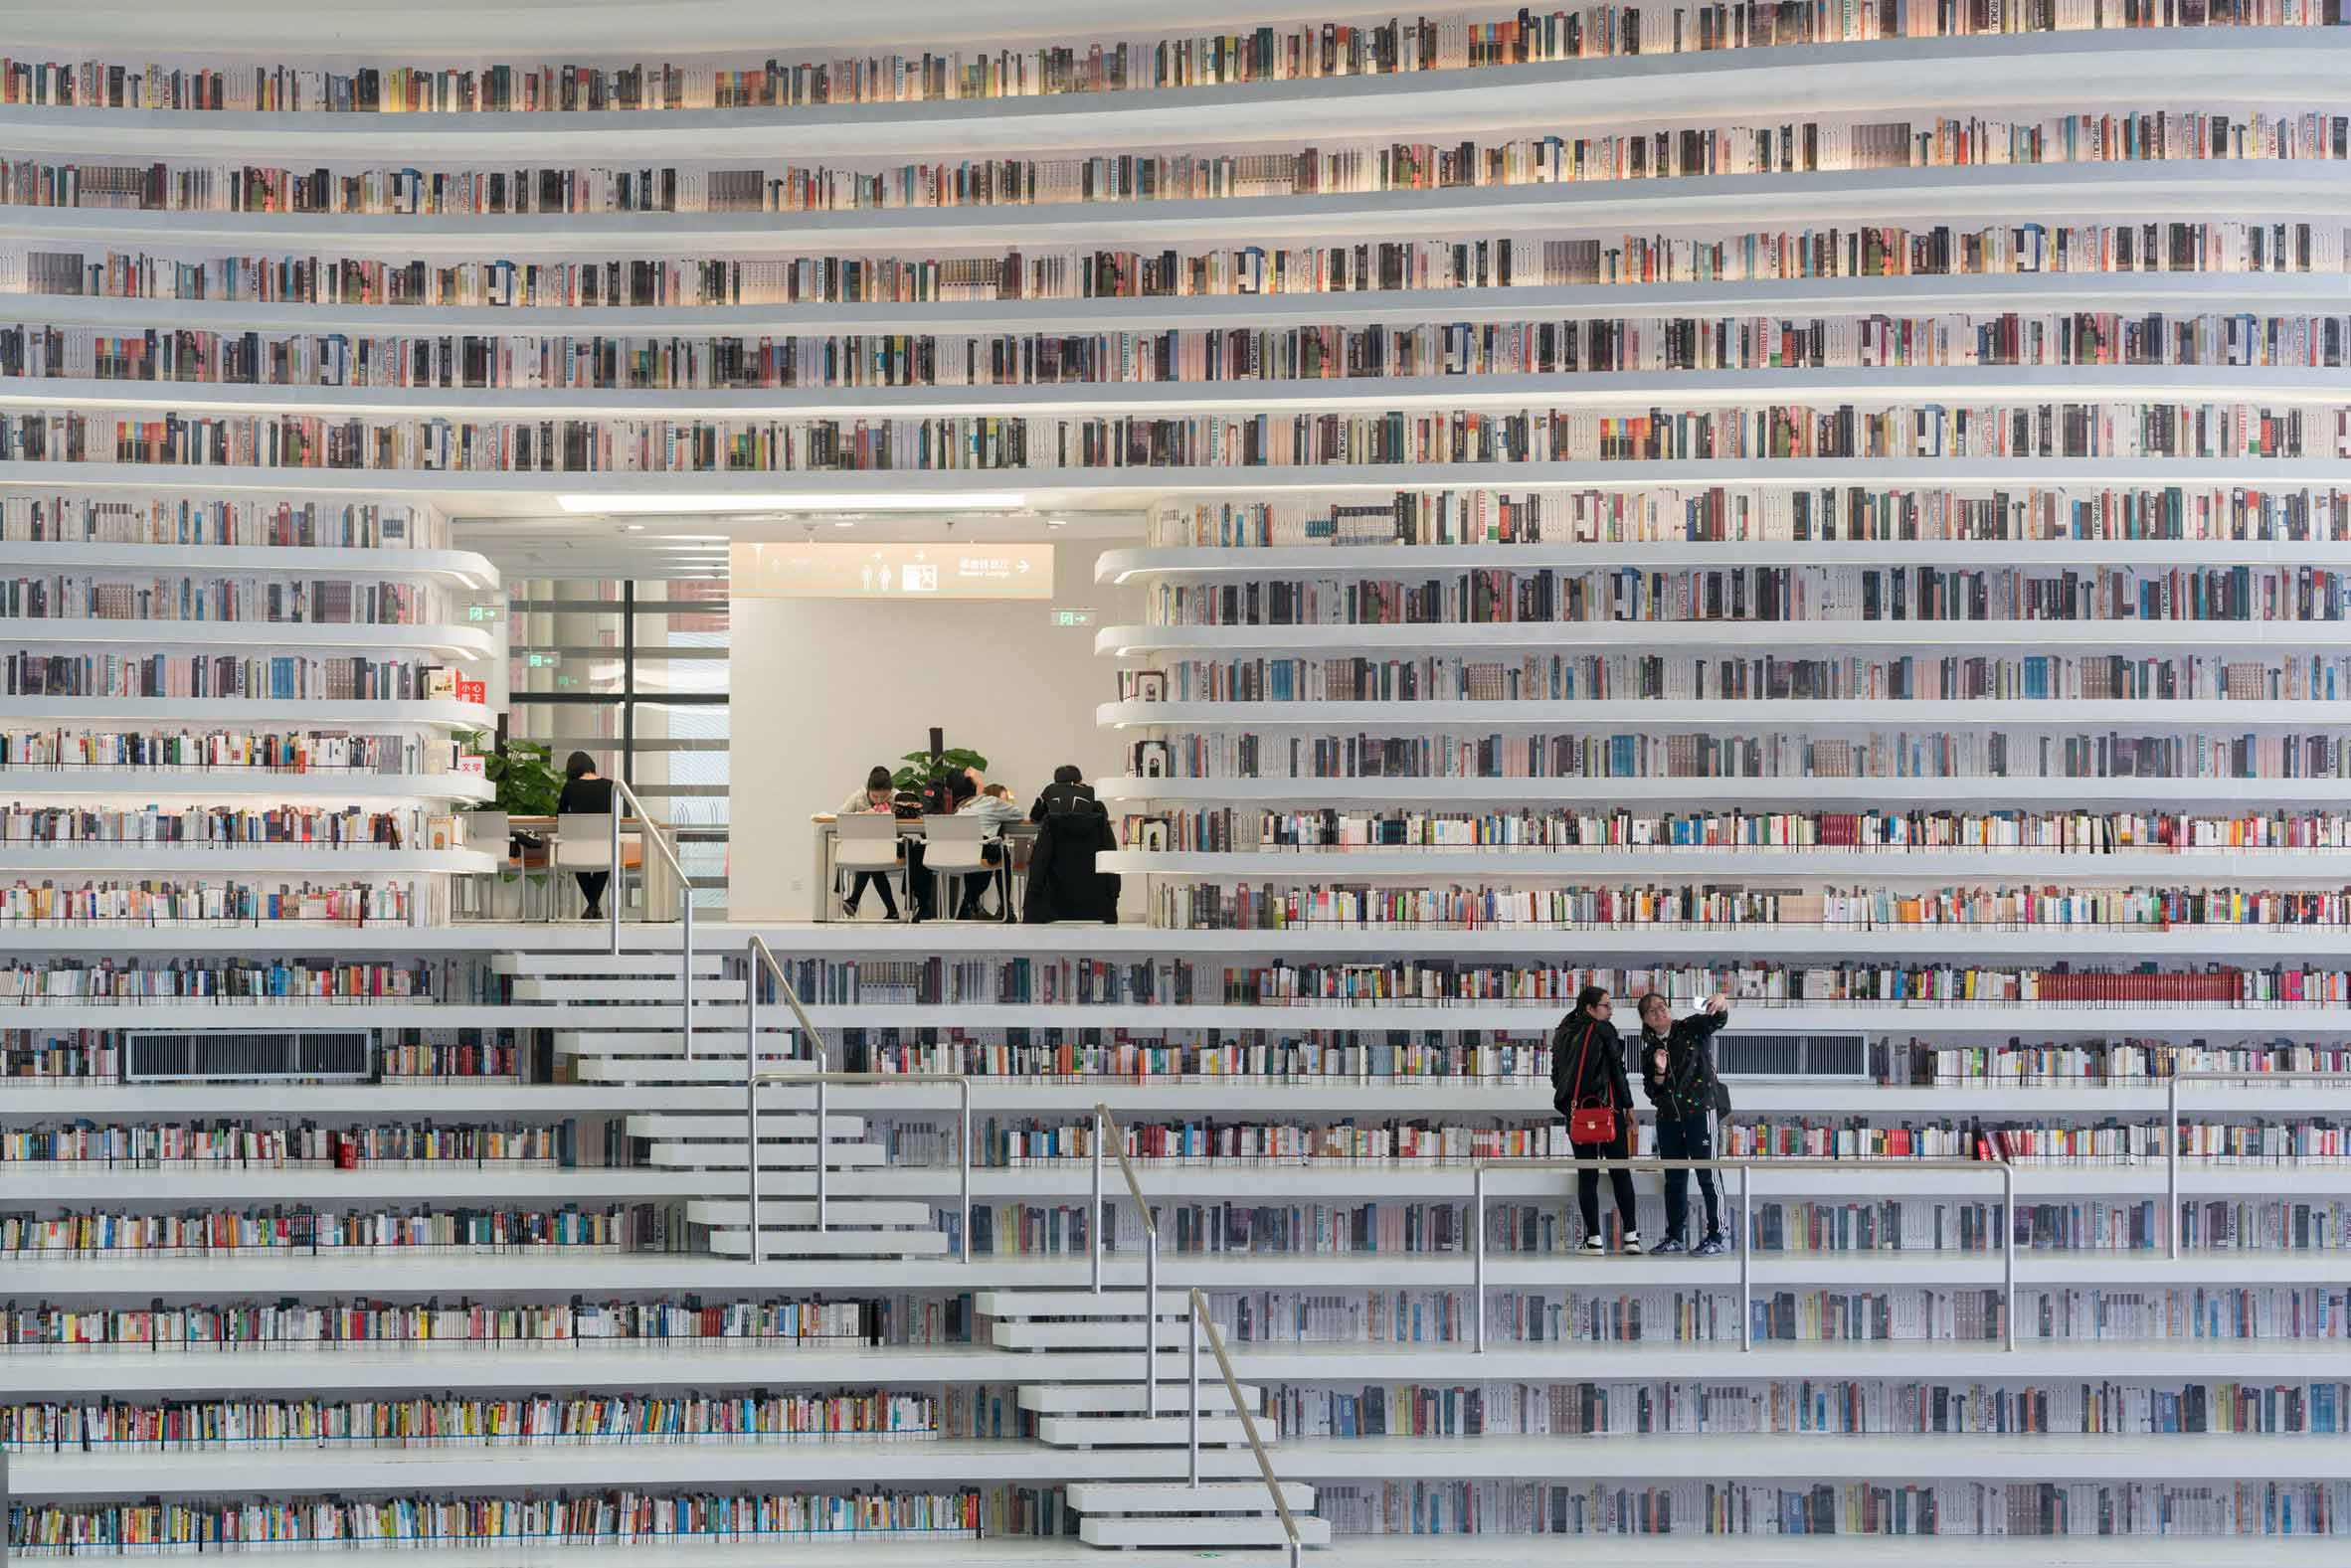 tianjin-binhai-library-mvrdv-architecture-public-and-leisure-china_dezeen_2364_col_7